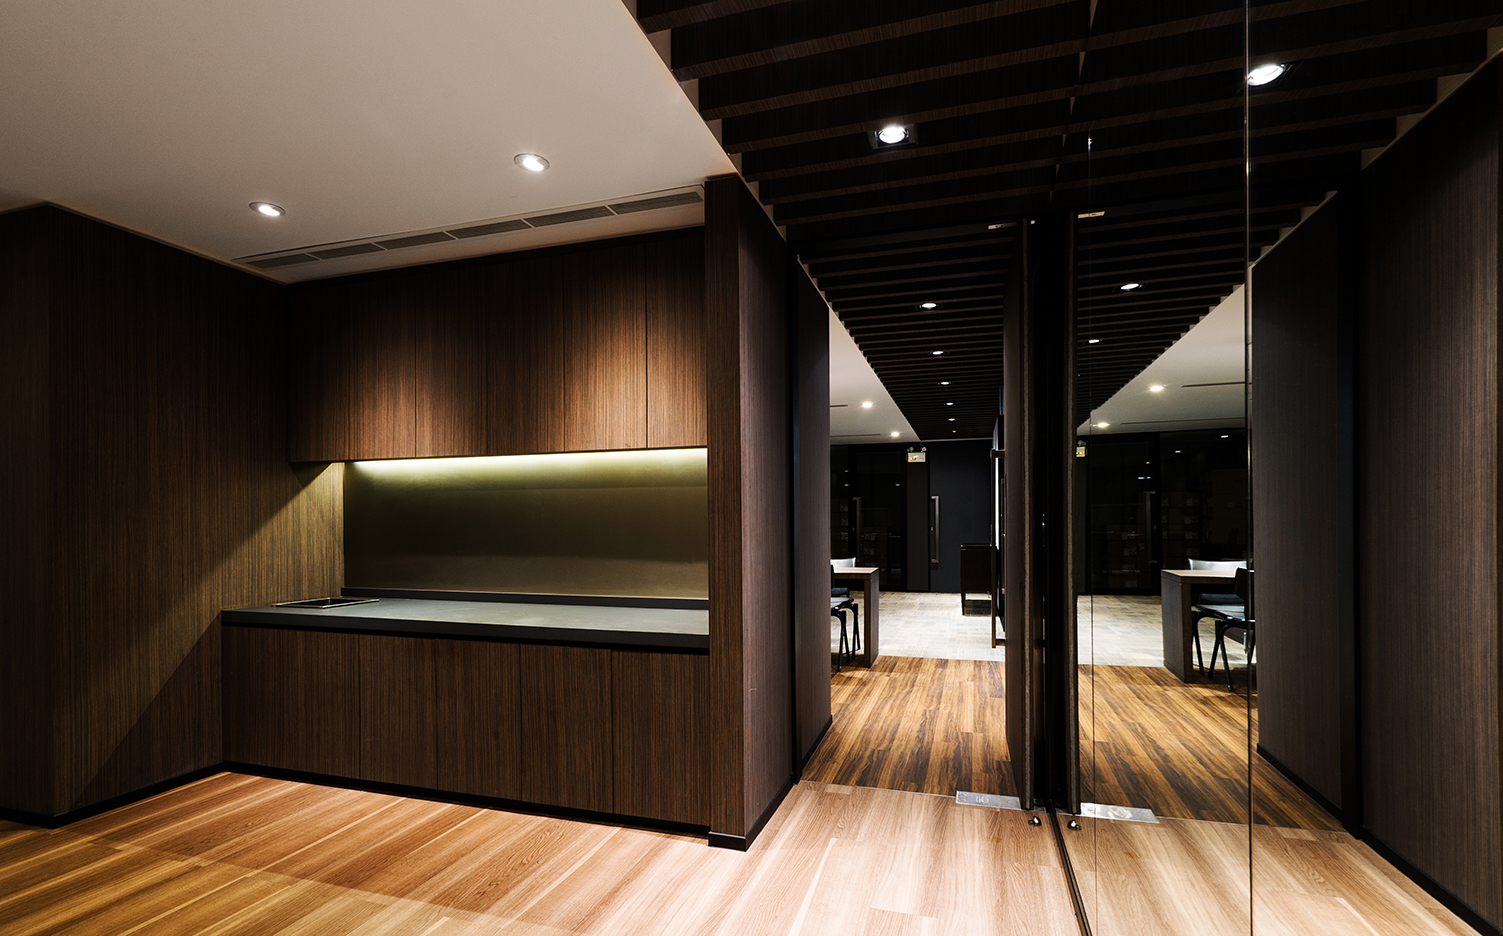 10design Weerawong C&P office interior design law firm 23